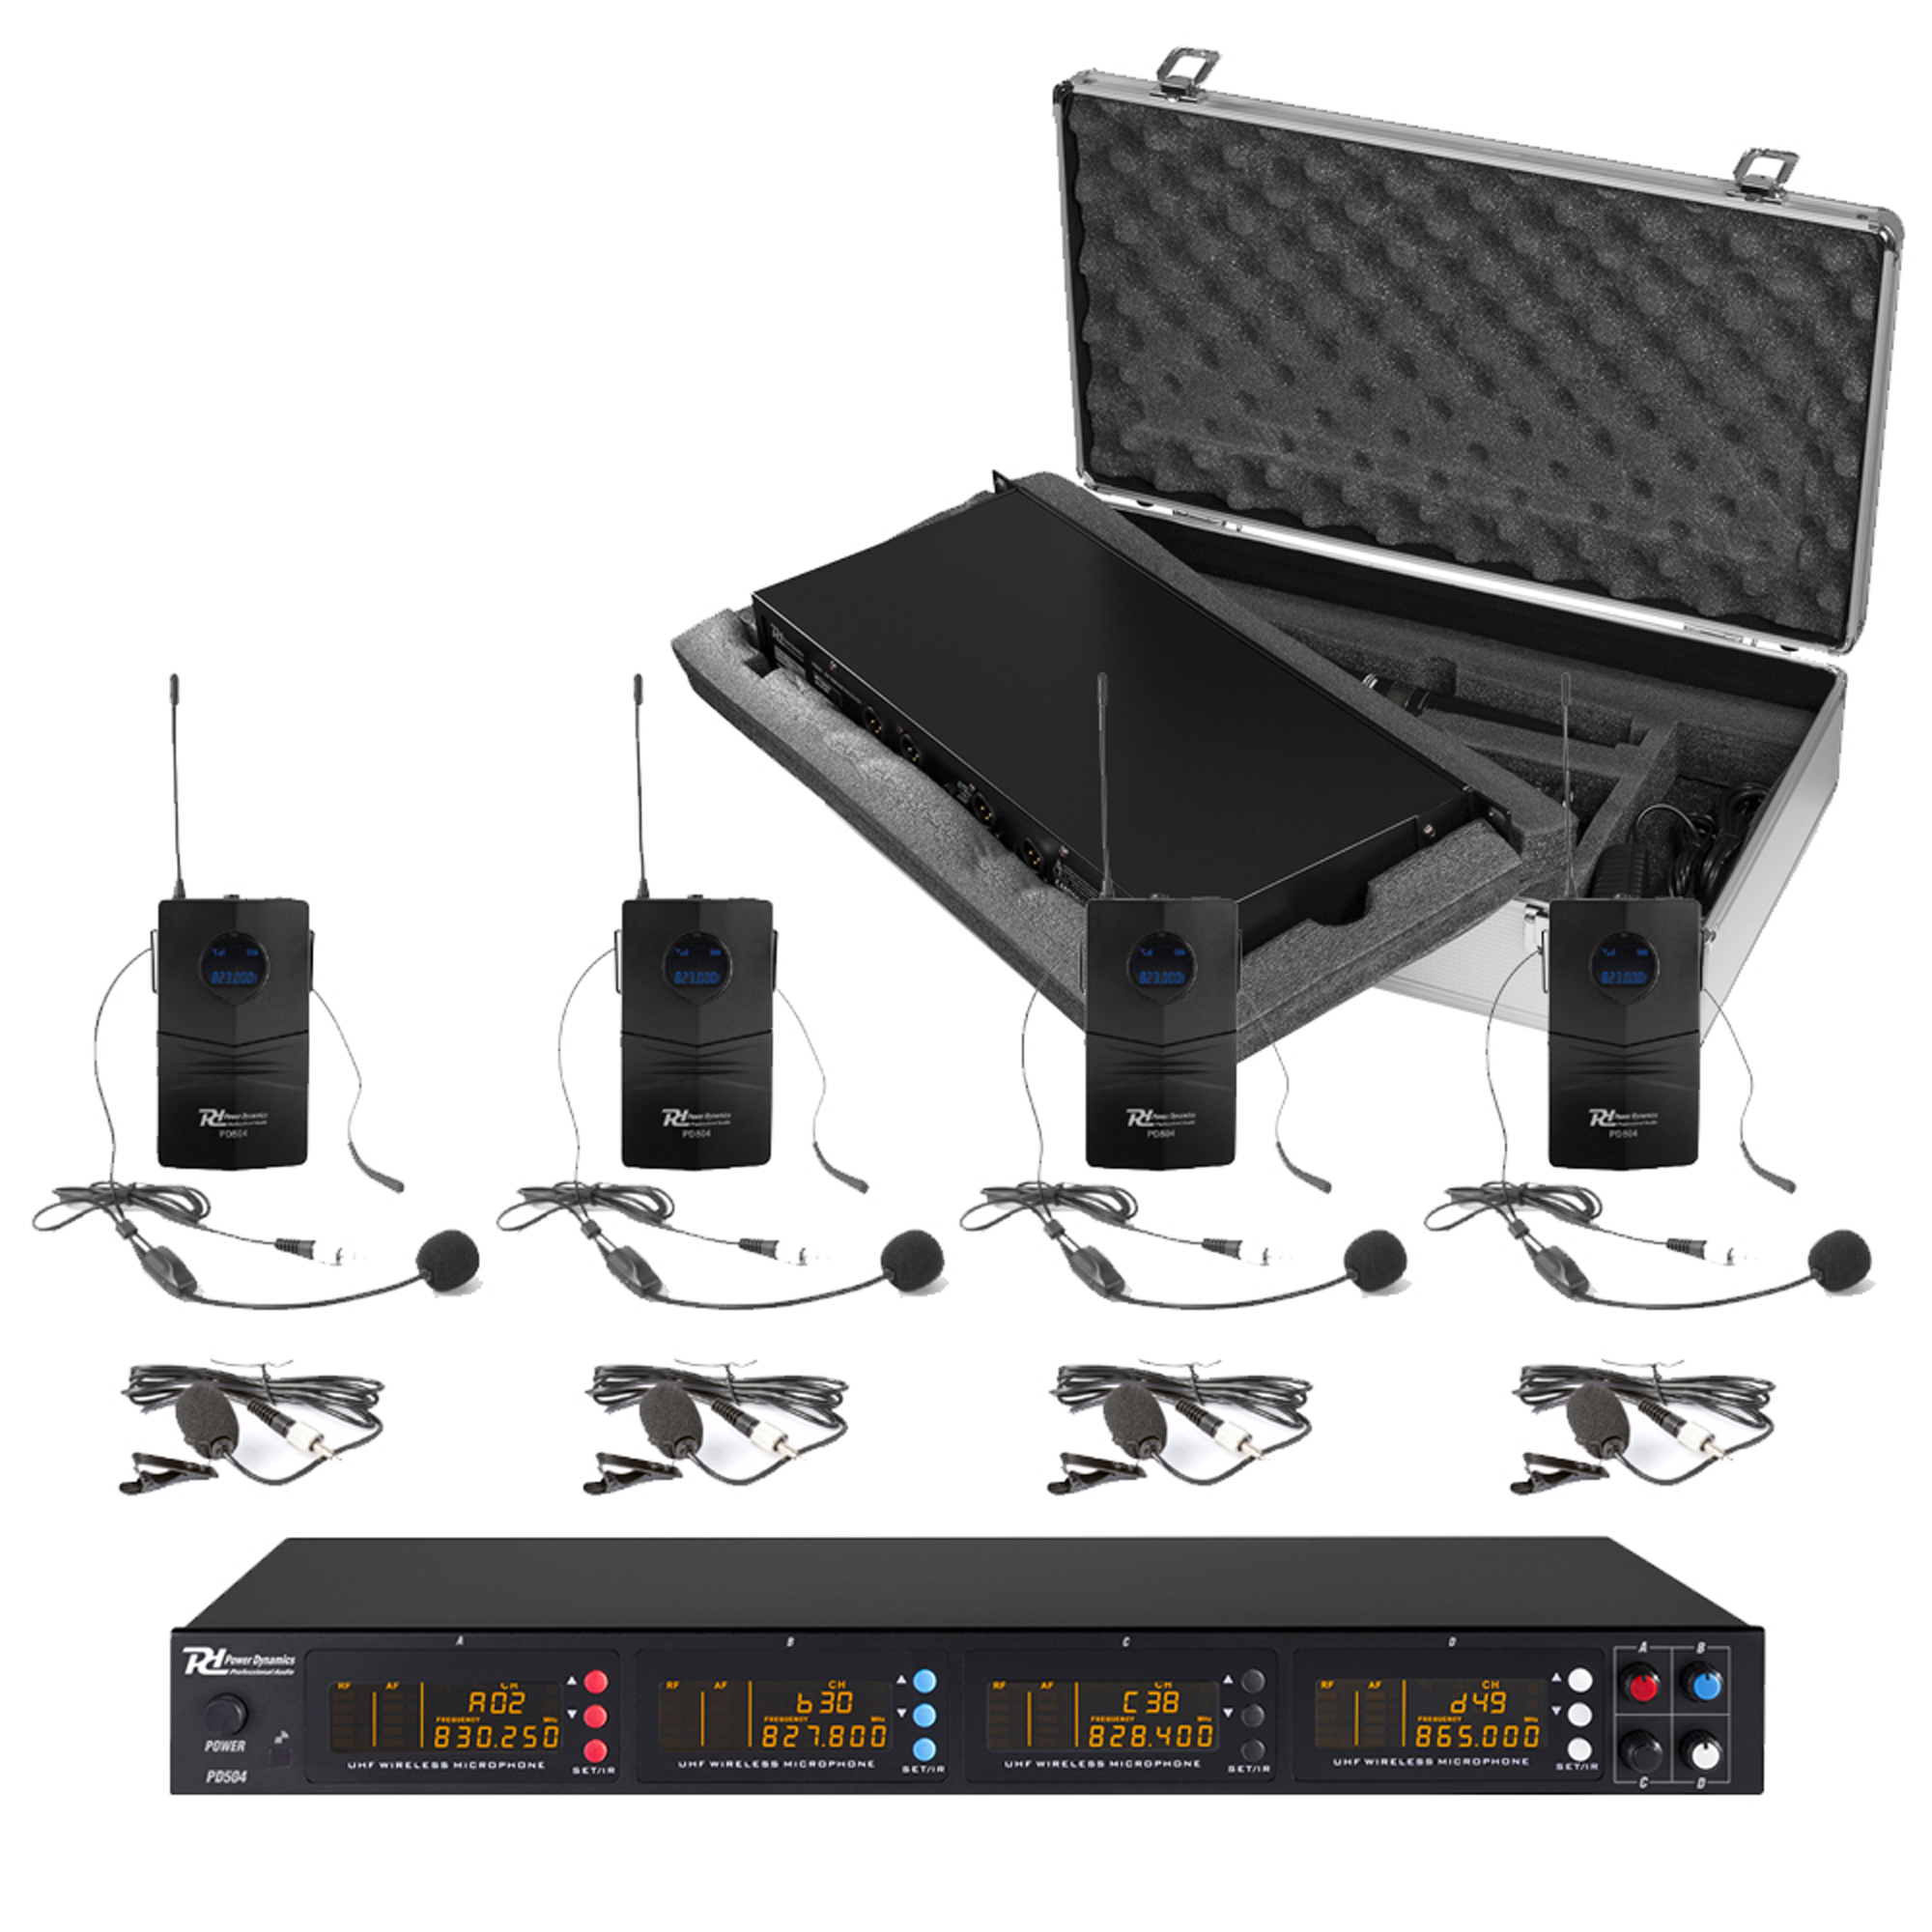 PD PD504B UHF Wireless Bodypack Microphone System, Set of 4